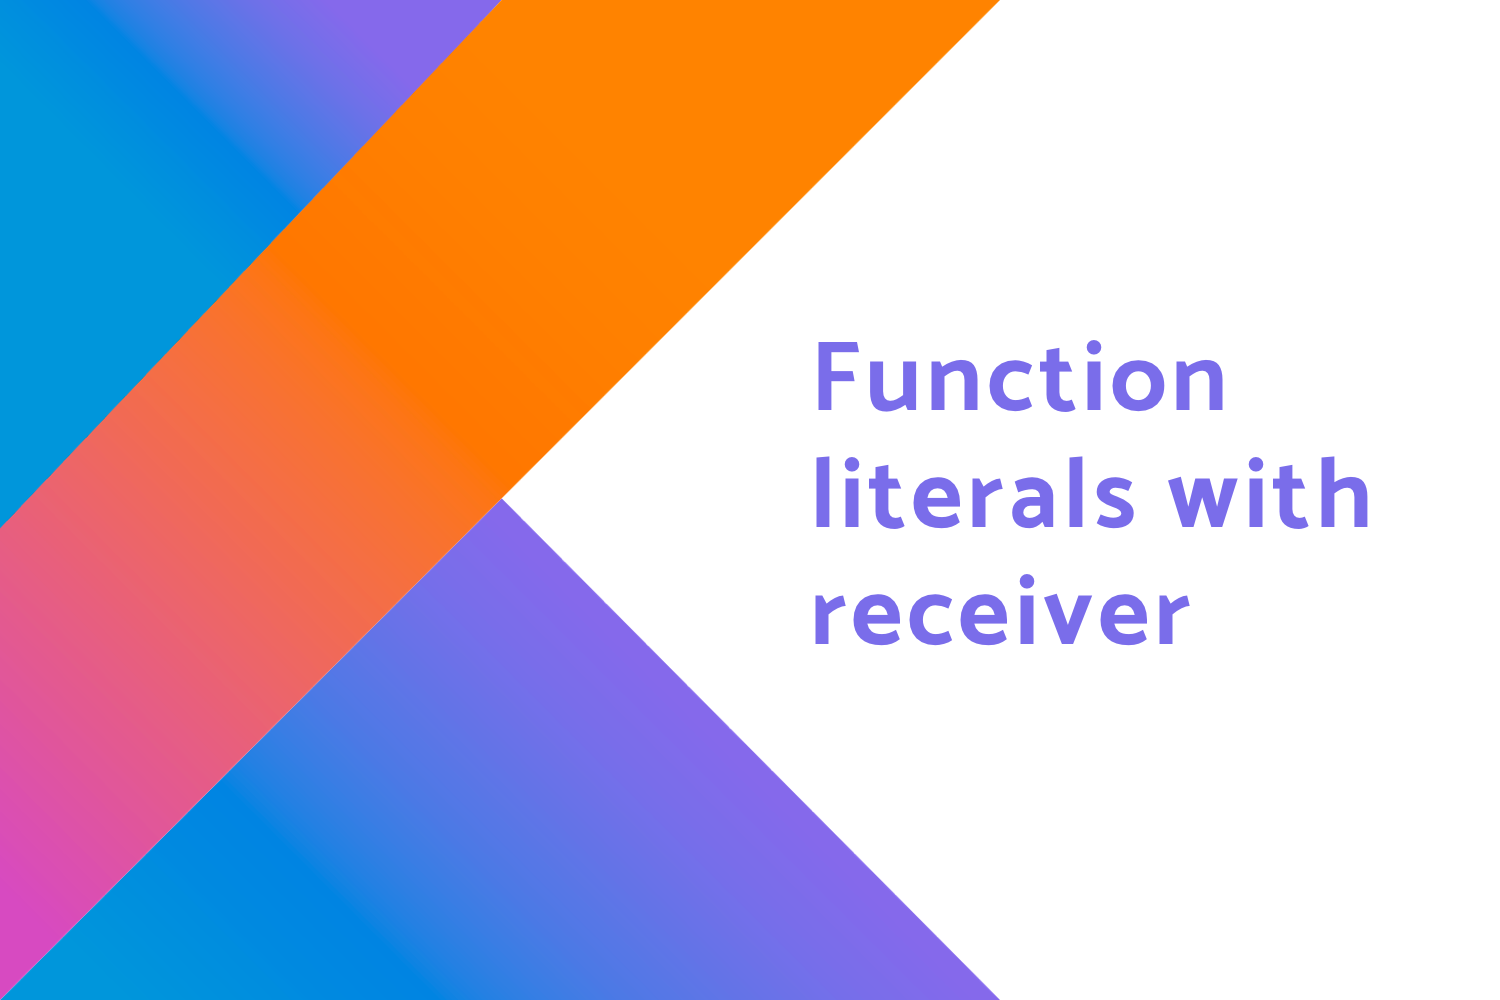 Function literals with receiver in Kotlin